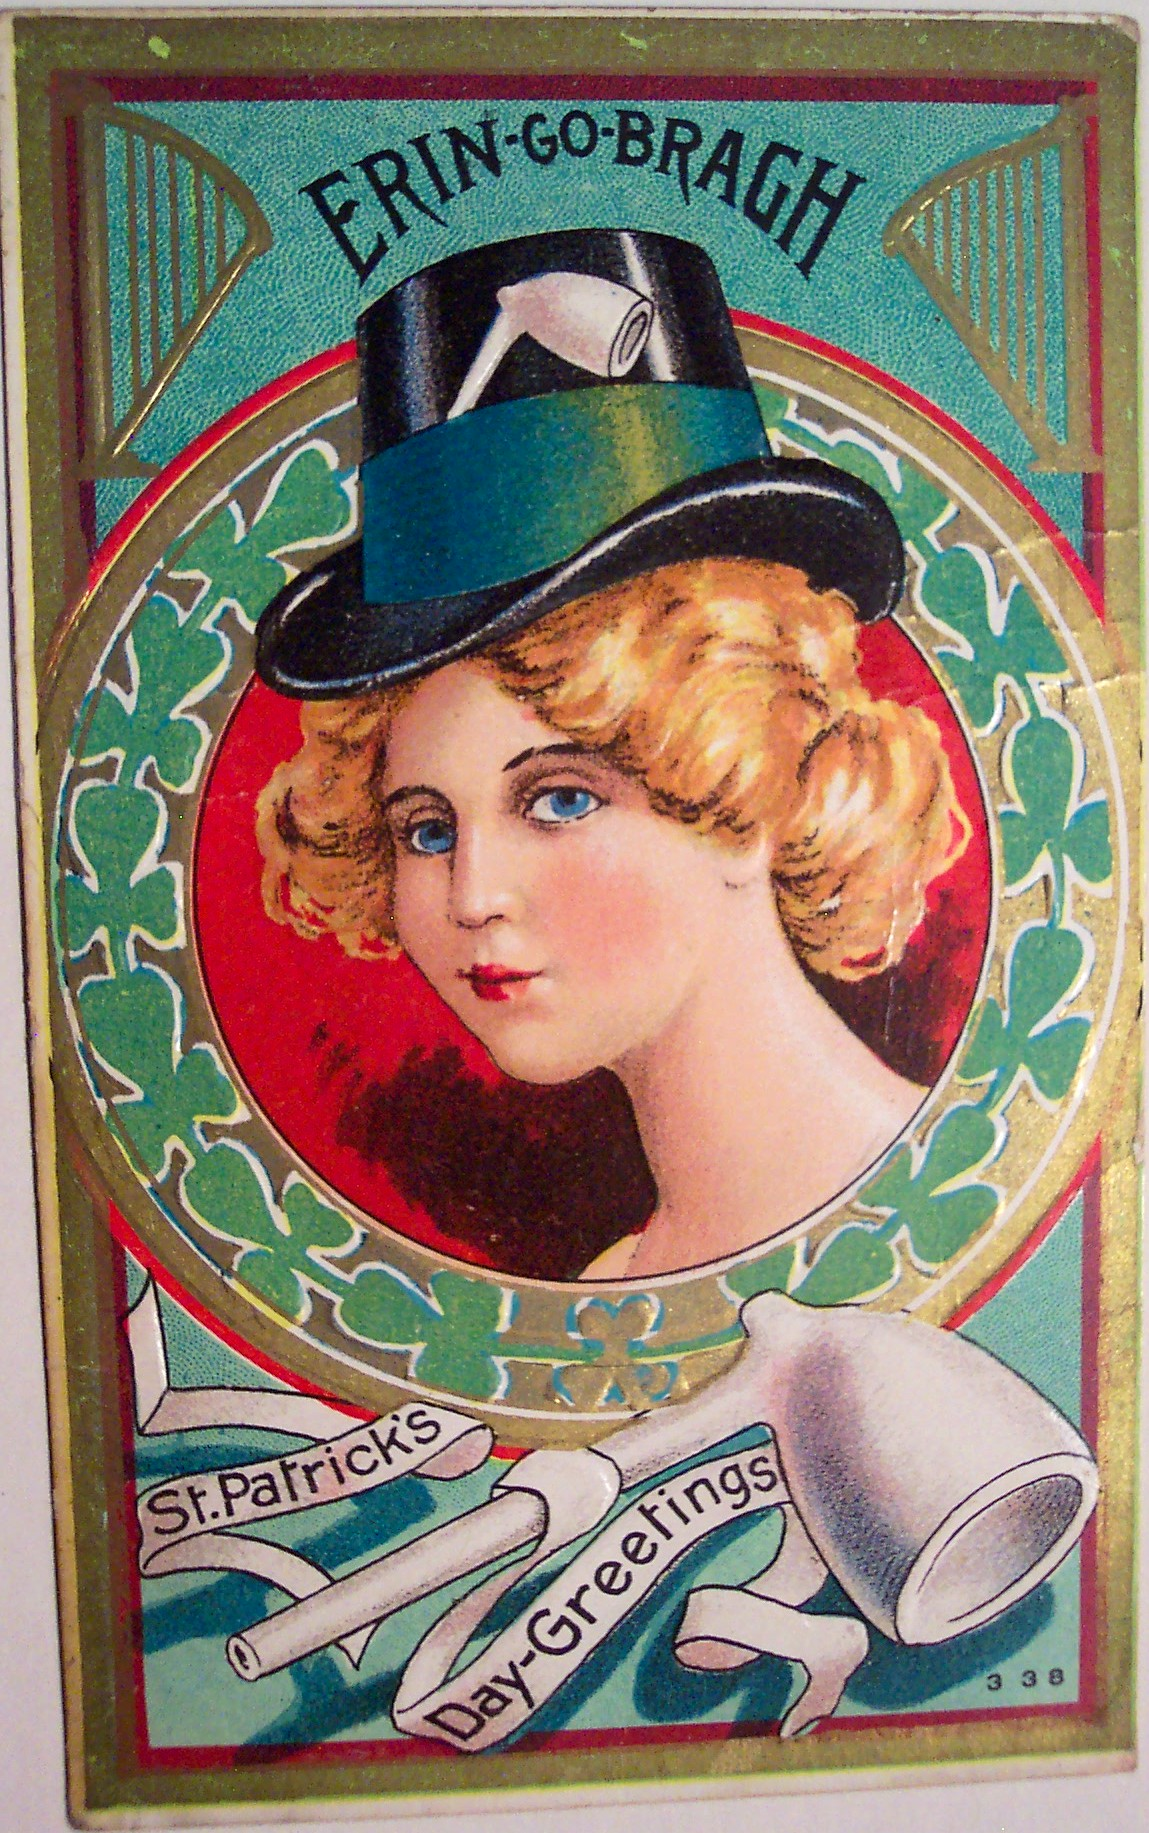 This is a very pretty vintage St. Patty's Day card. Source: Flickr User riptheskull